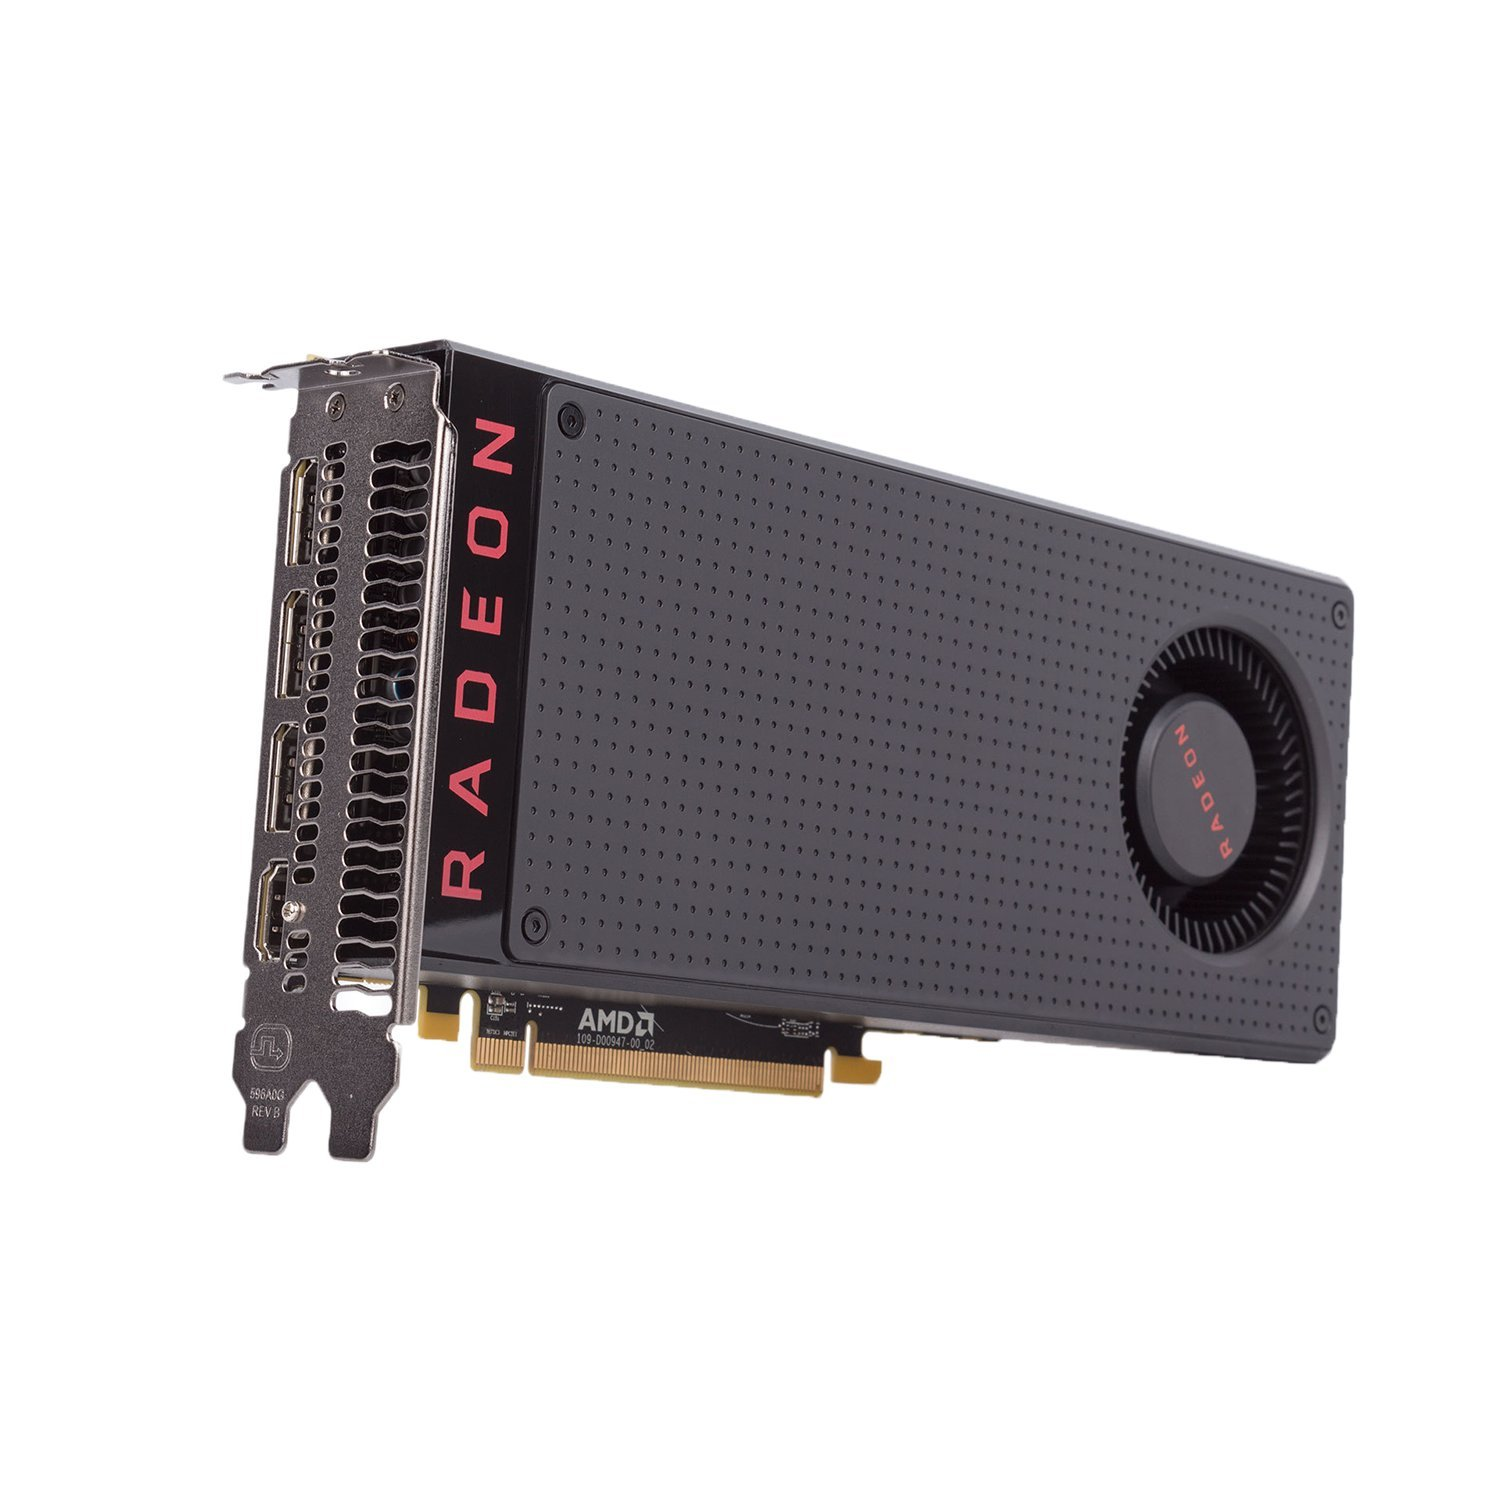 AMD Radeon RX 480 8GB GDDR5 PCI Express 3 0 Gaming Graphics Card - OEM